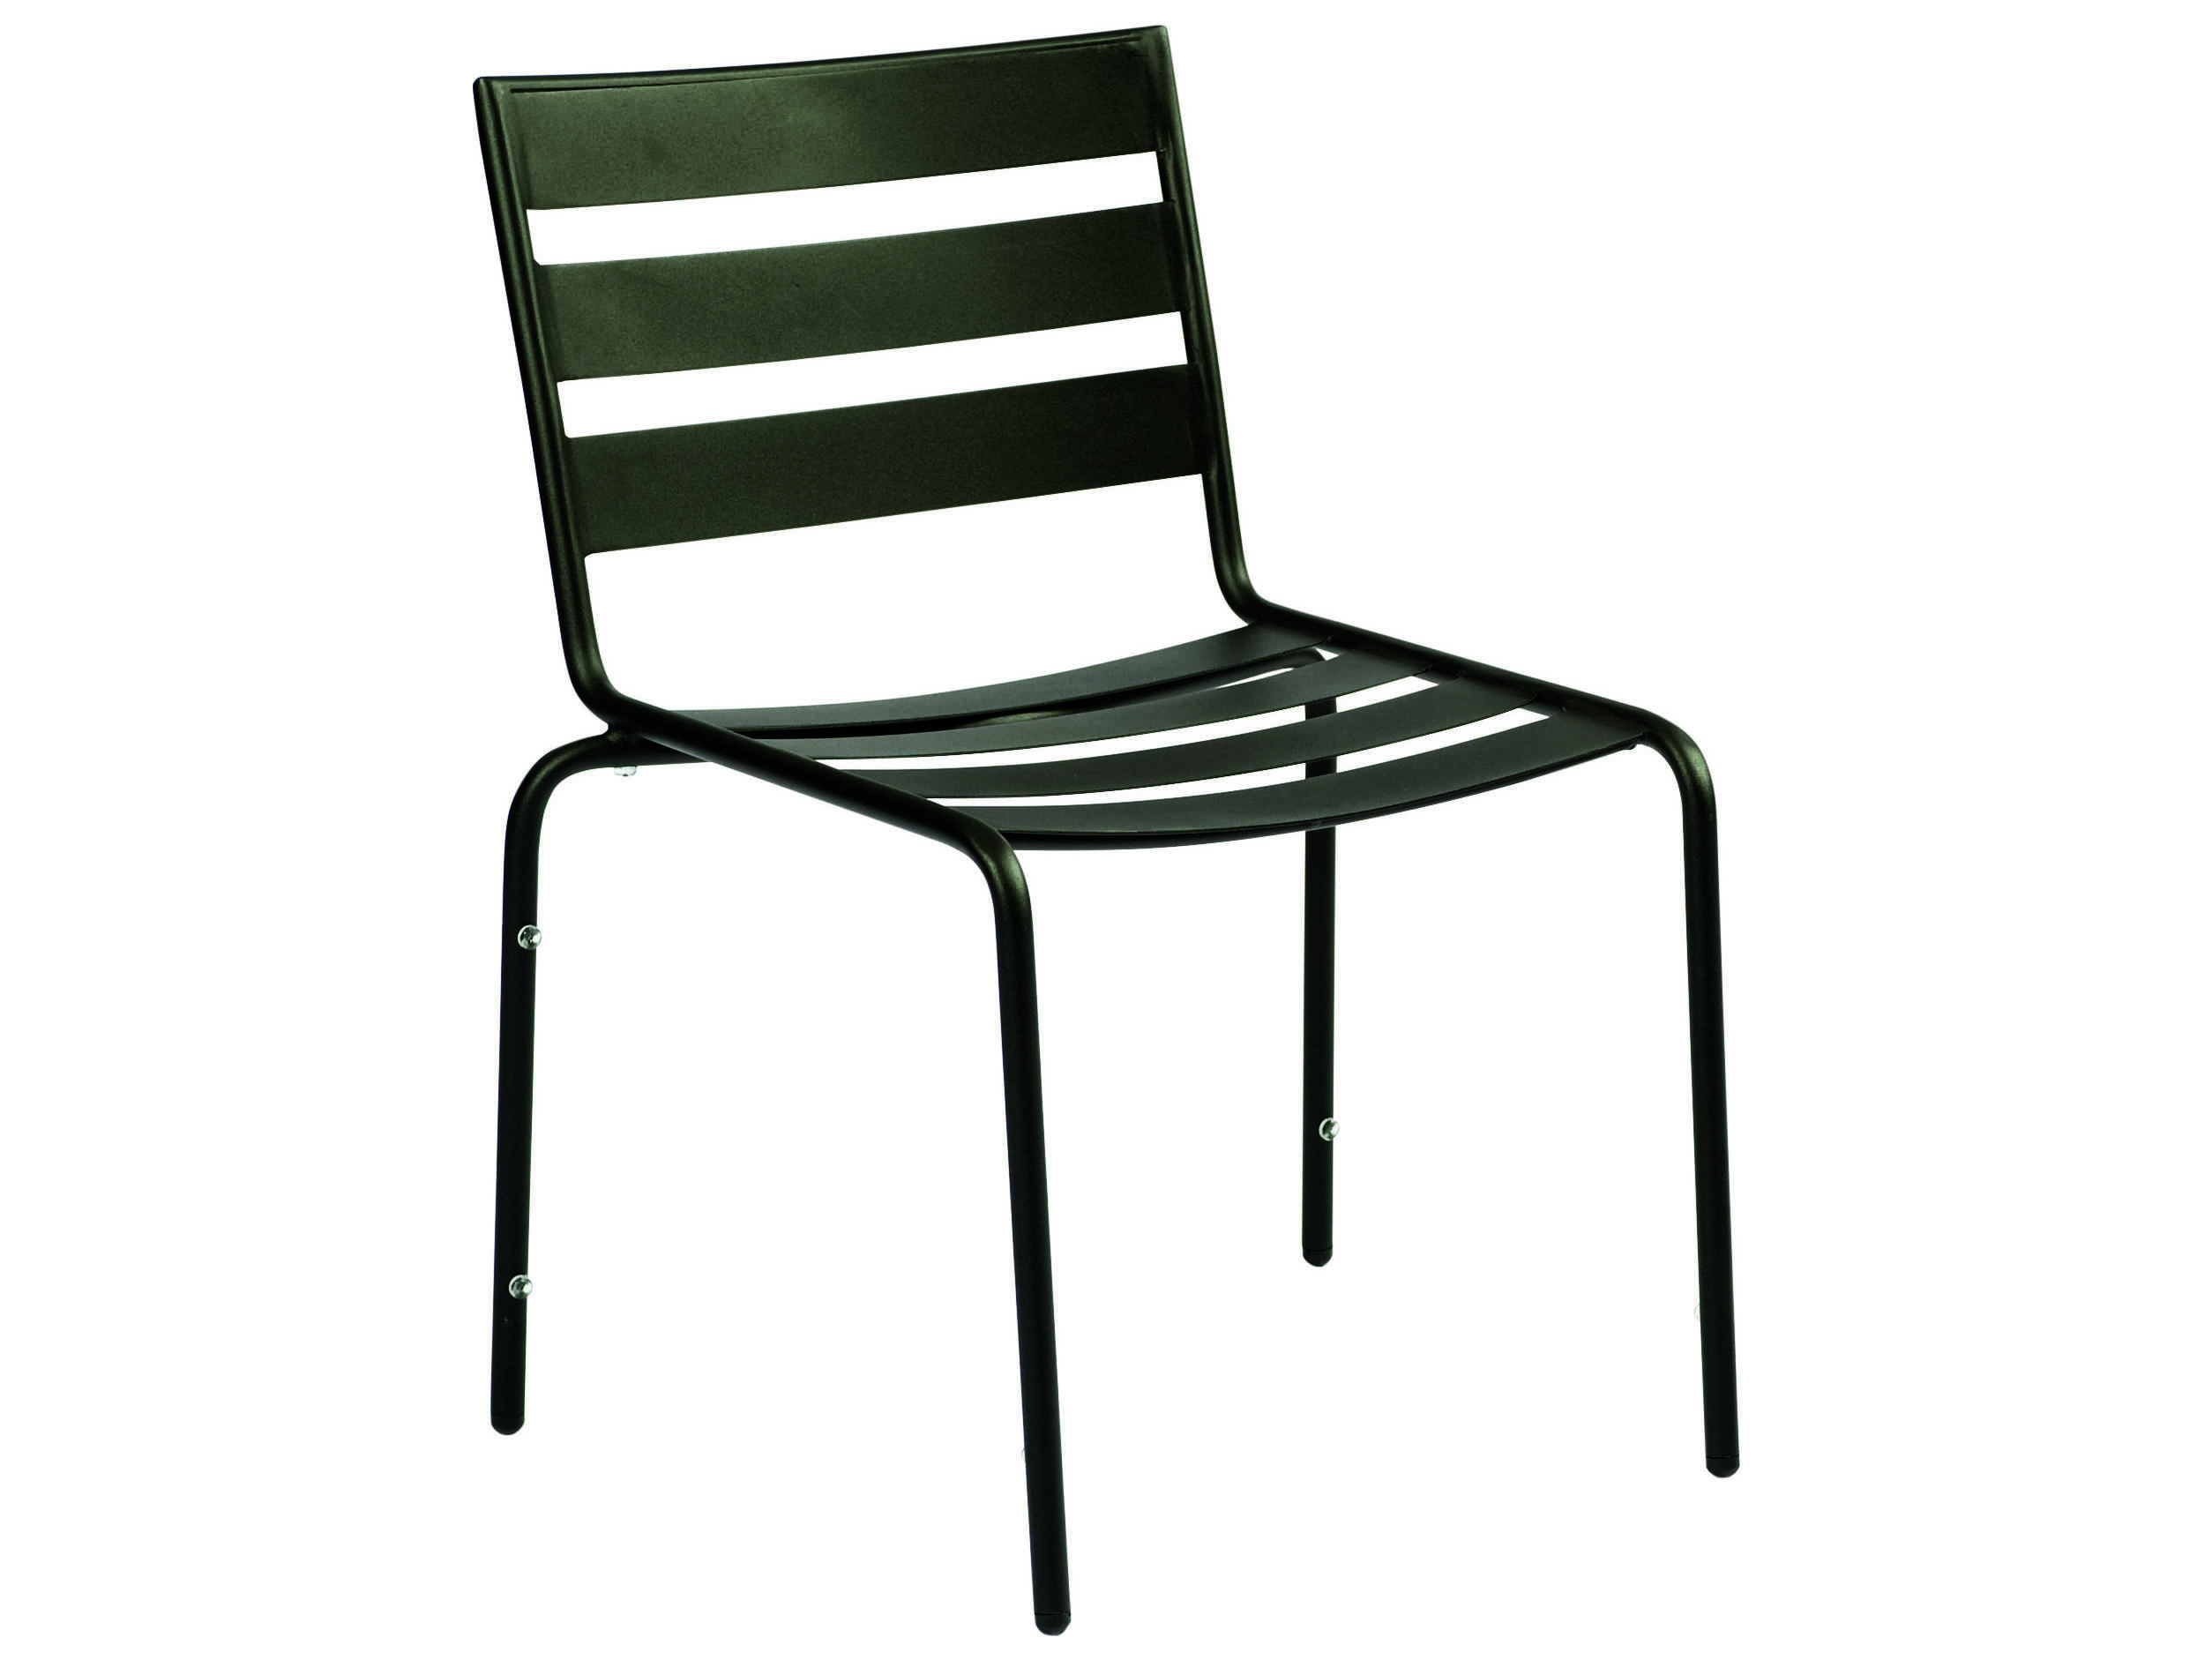 outdoor dining chairs stackable with storage ottoman woodard cafe series wrought iron chair in